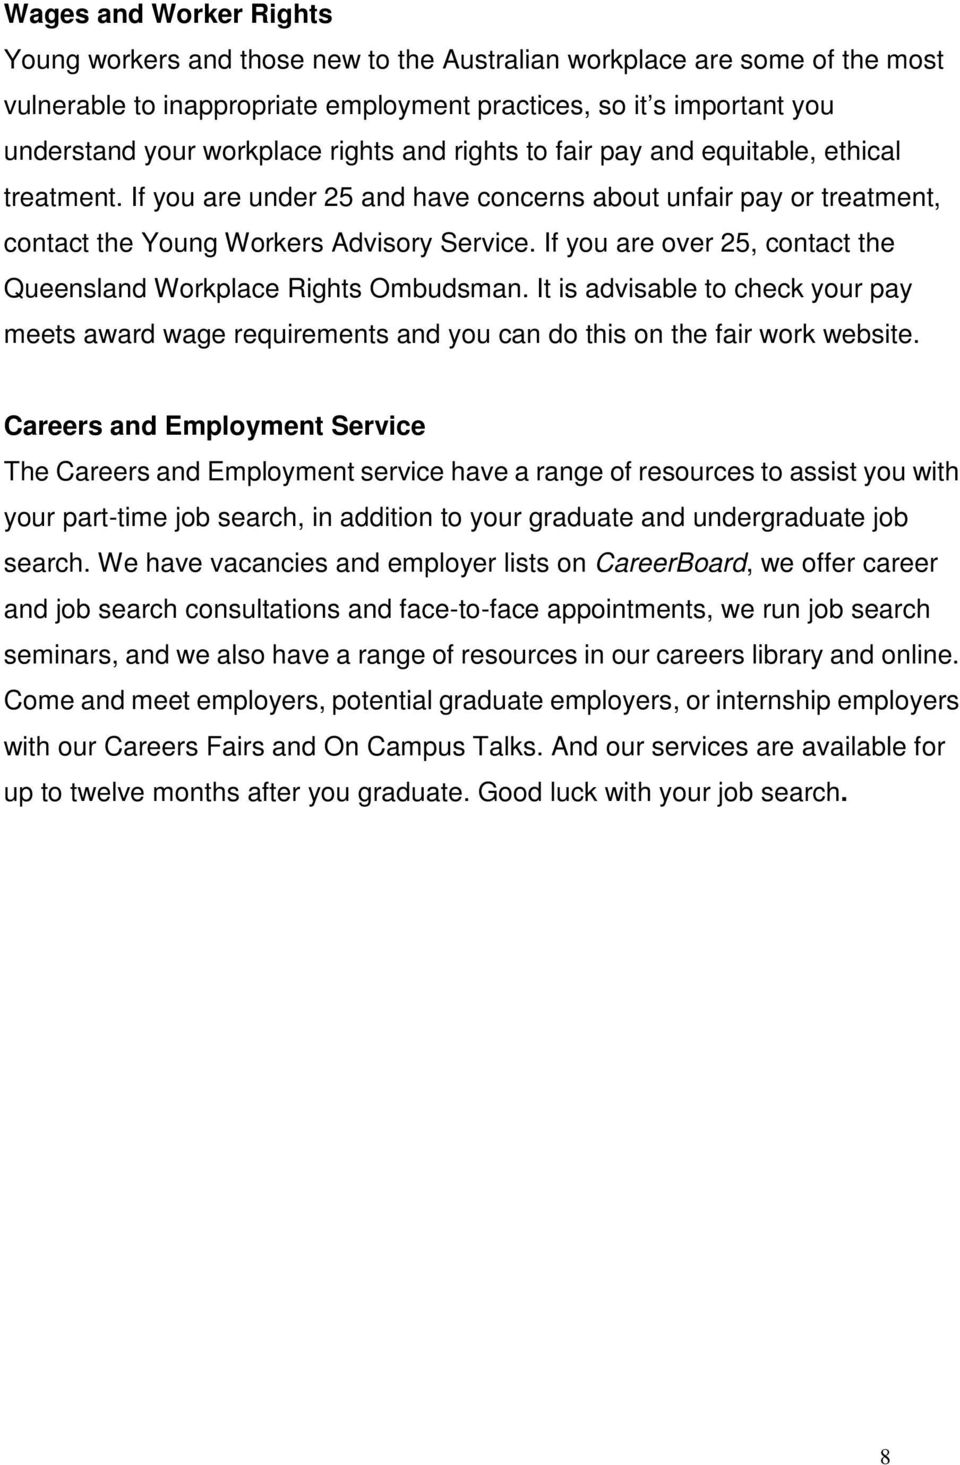 If you are over 25, contact the Queensland Workplace Rights Ombudsman. It is advisable to check your pay meets award wage requirements and you can do this on the fair work website.